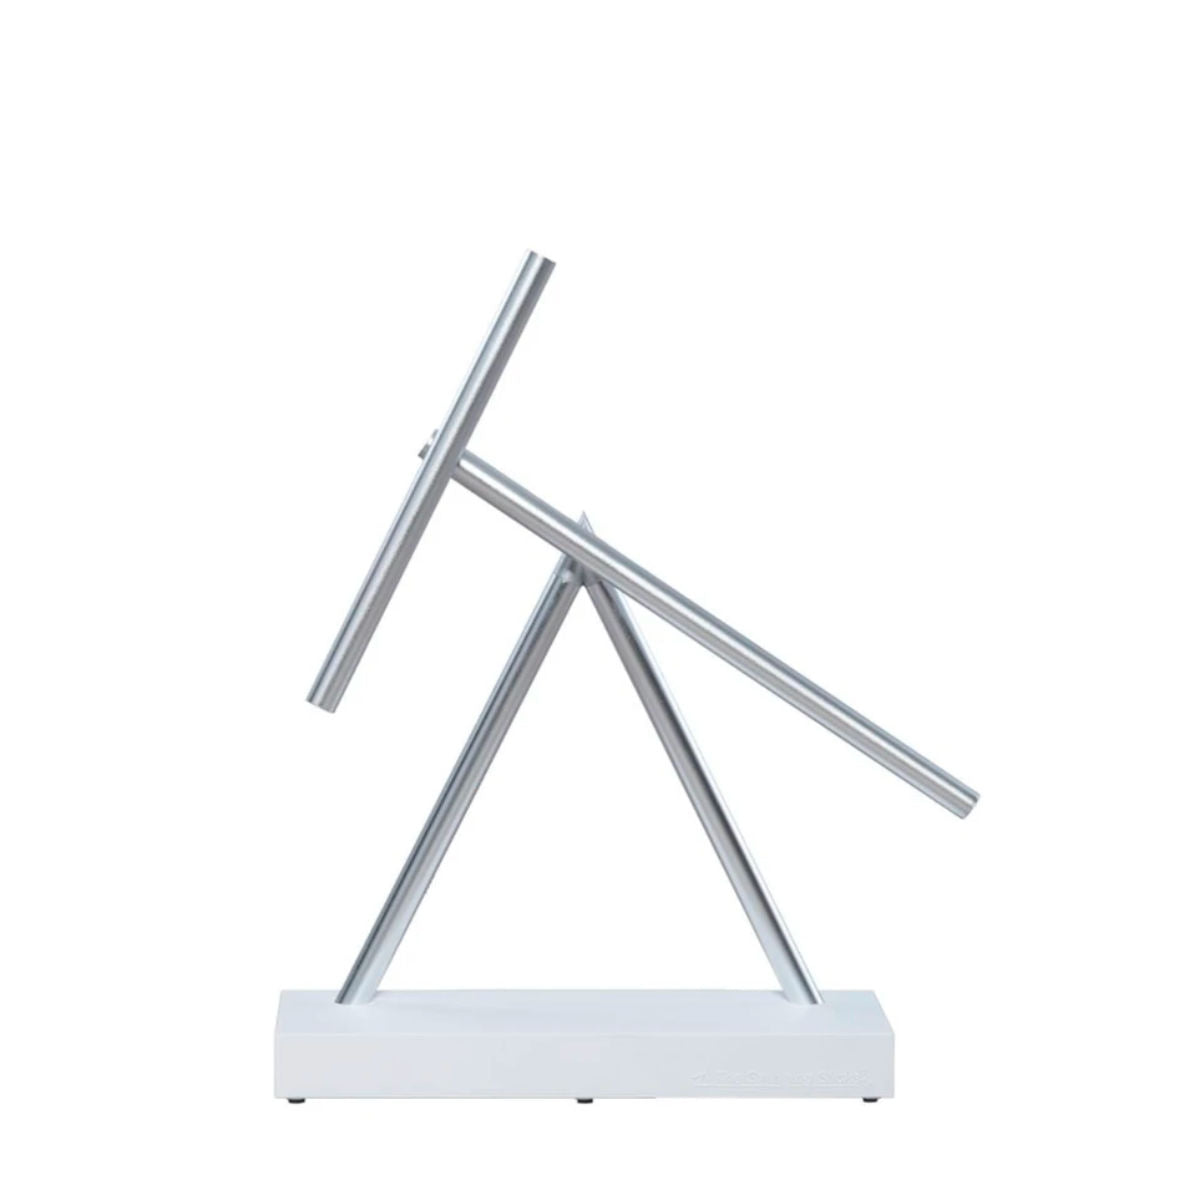 Geelong The Original Swinging Sticks®, white, 37cm